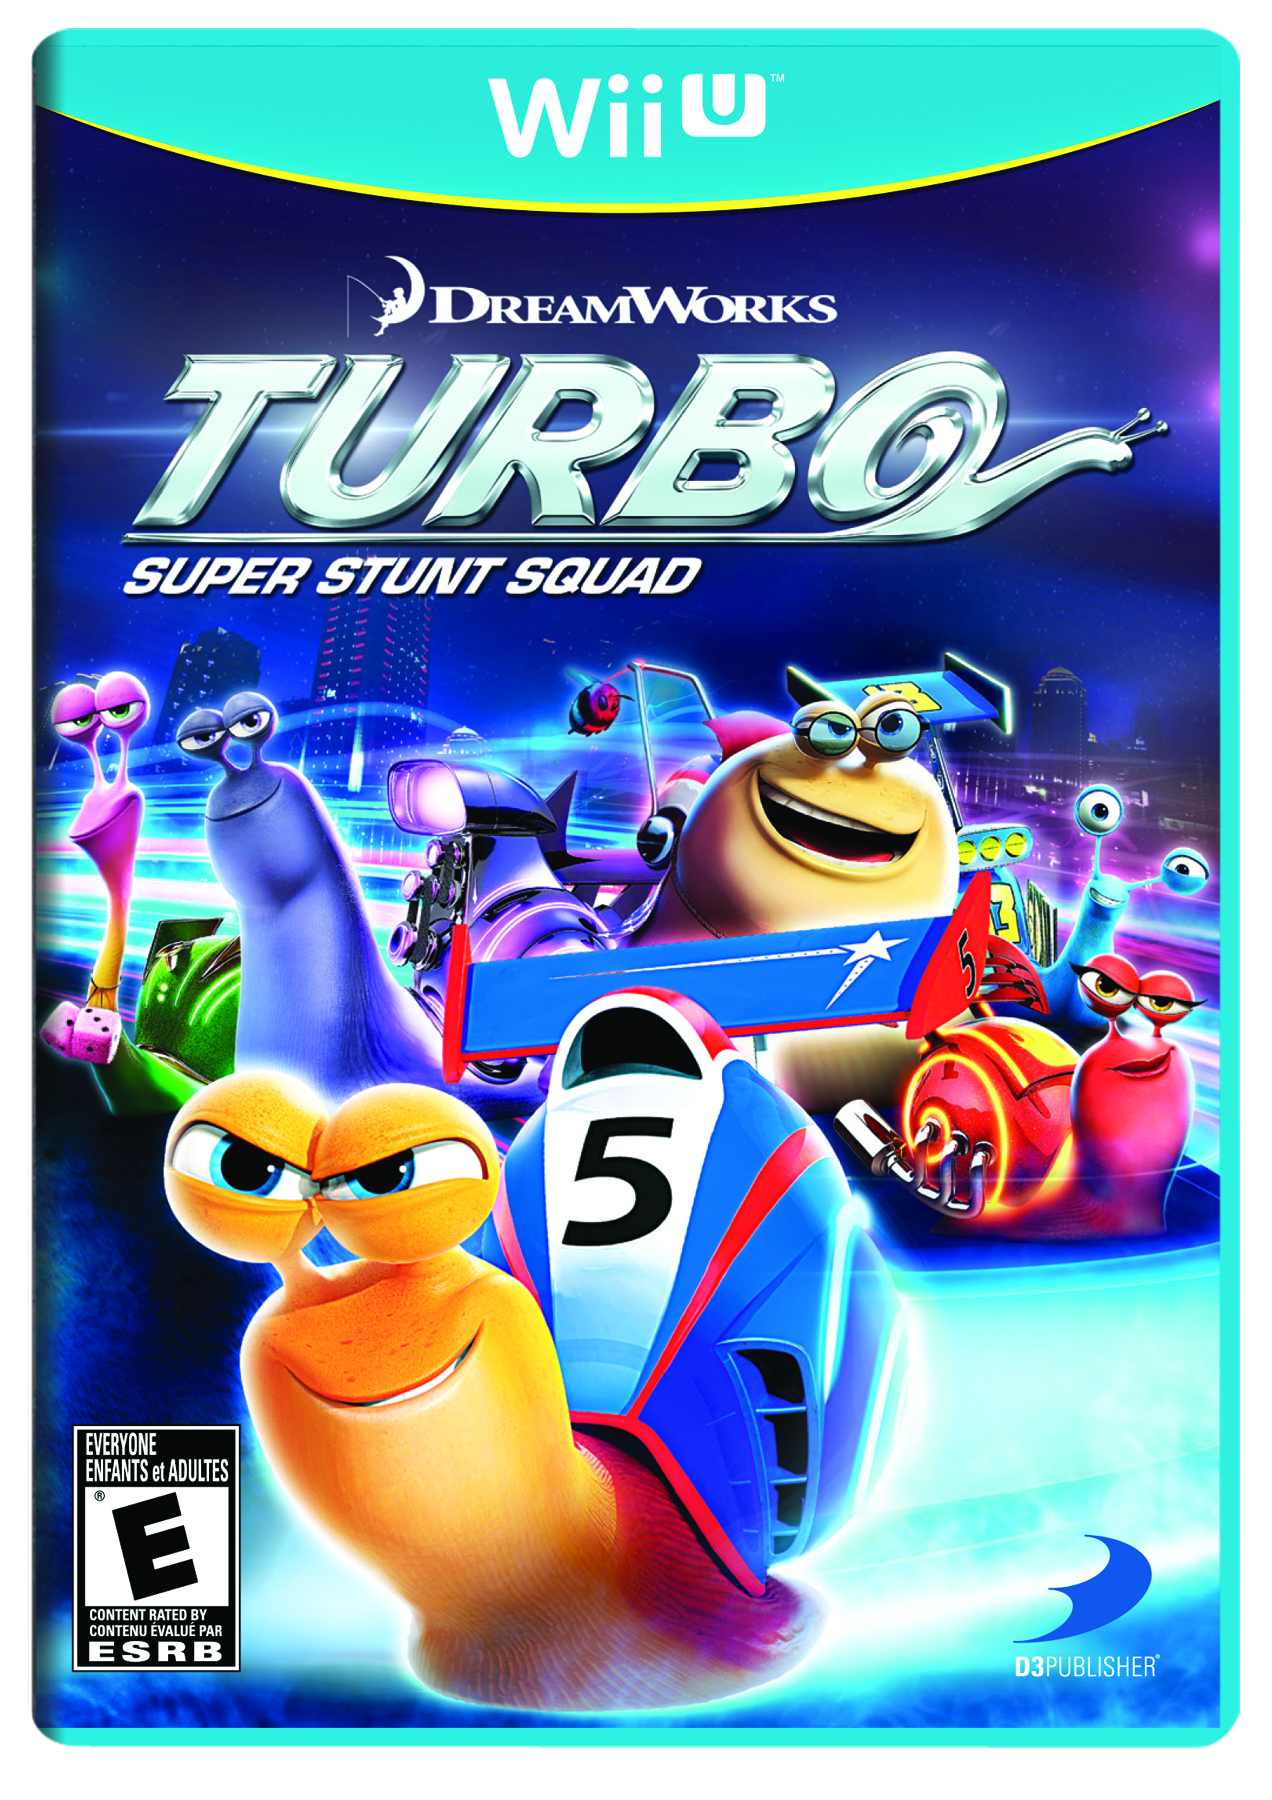 PN Review: Turbo: Super Stunt Squad Wii U